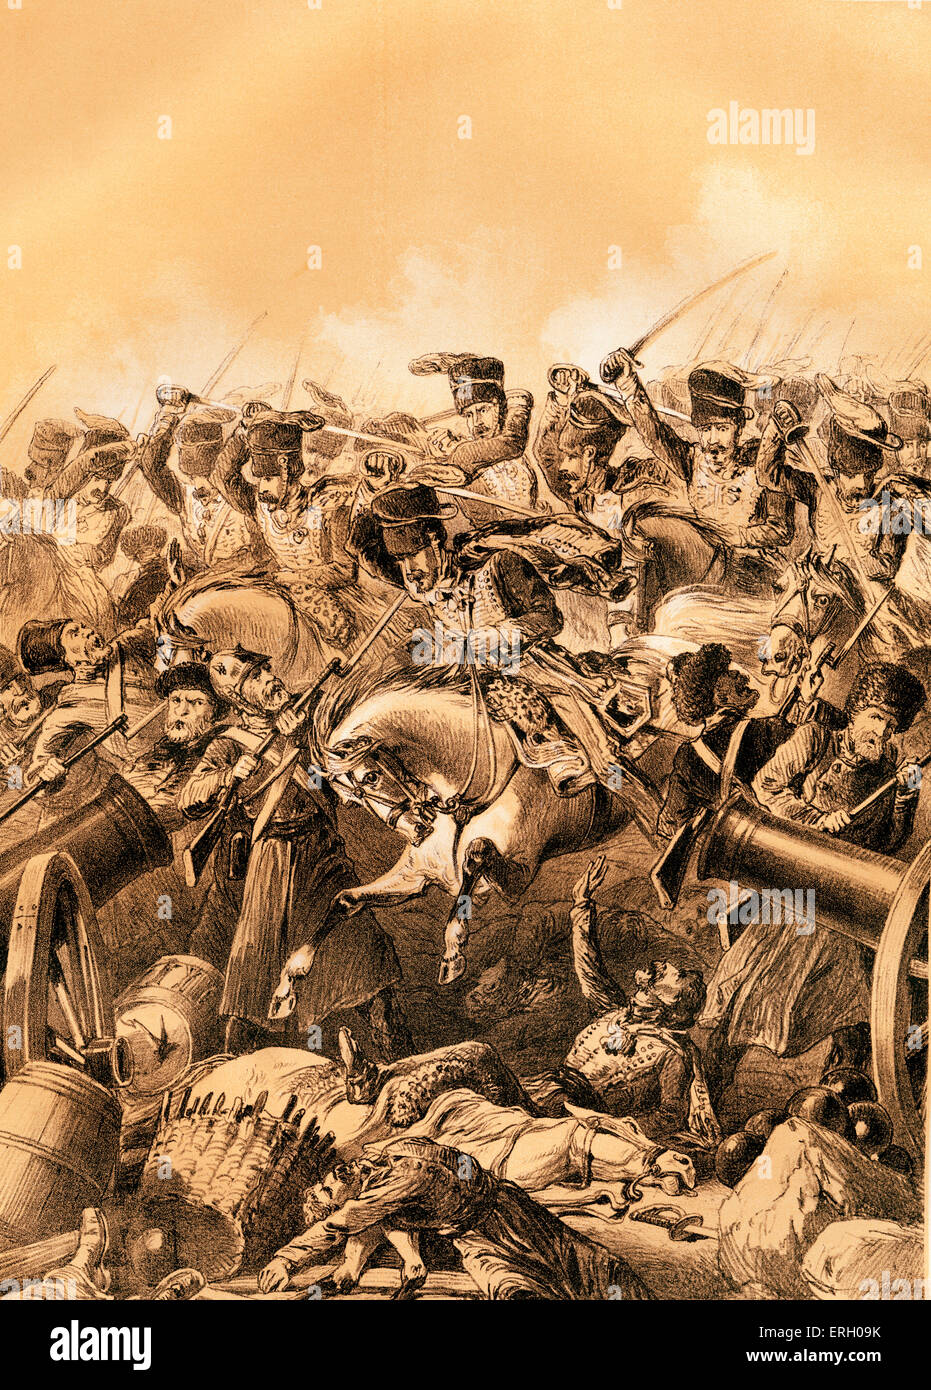 The charge of the light brigade at Balaclava led by Lord Cardigan during the Battle of Balaclava on 25 October 1854 Stock Photo